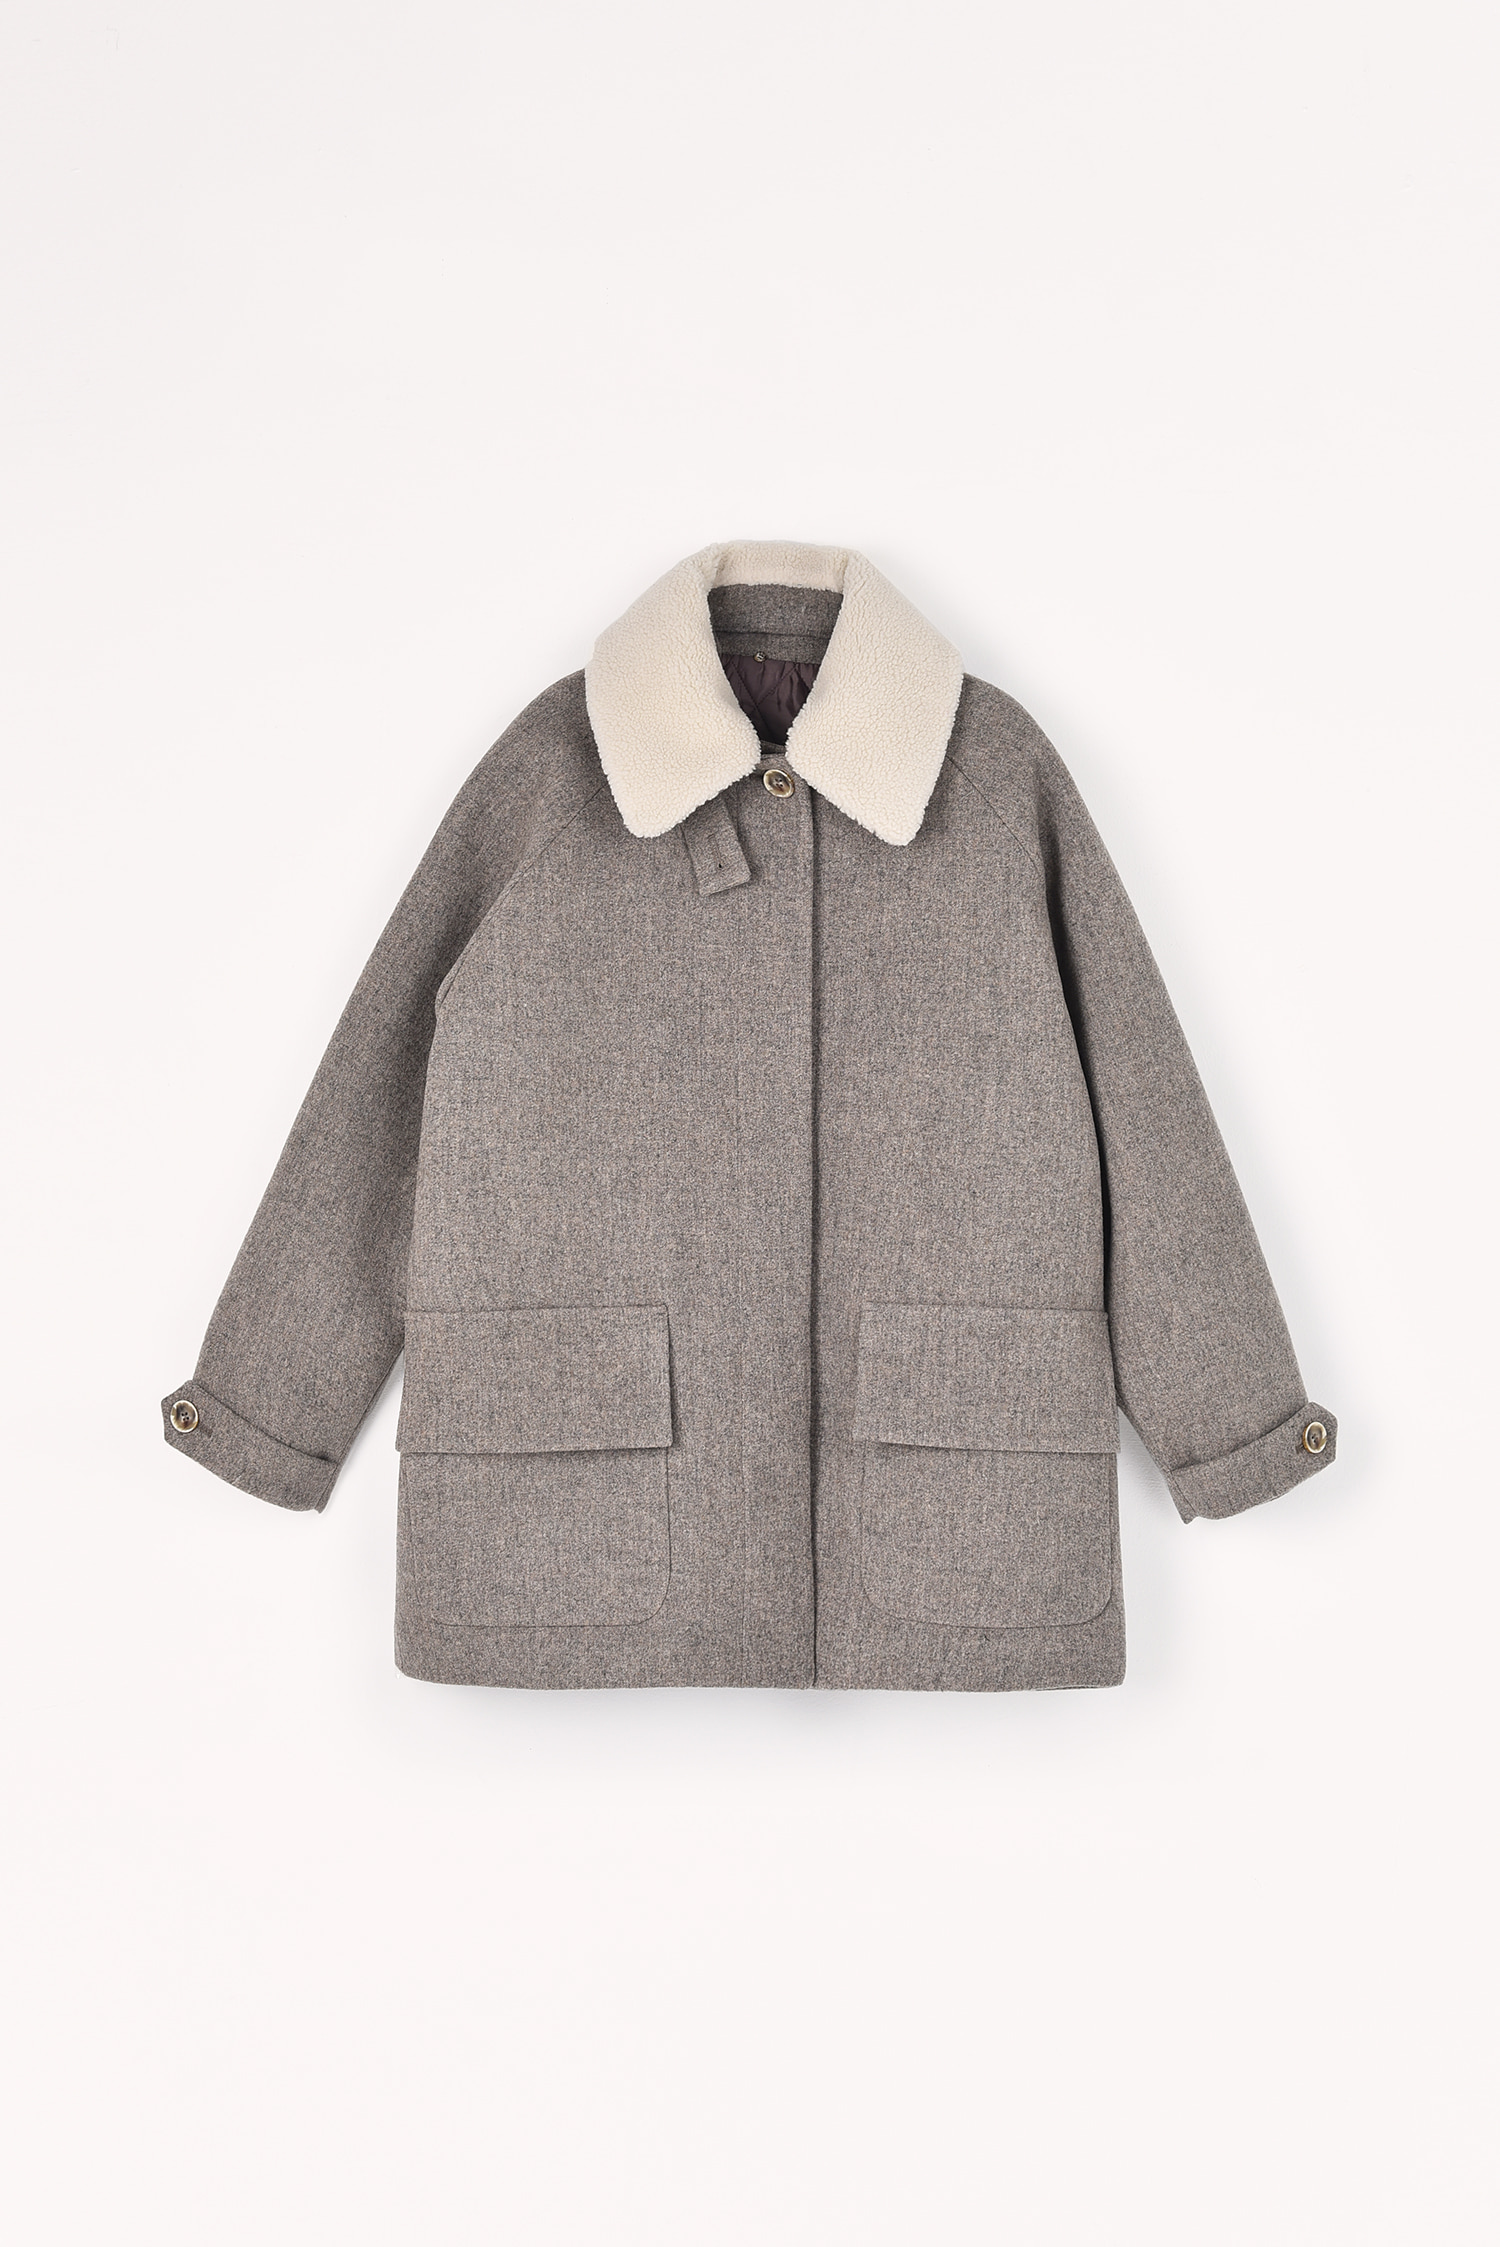 2 RE-ORDER / Thinsulate padded wool coat (Oatmeal grey)